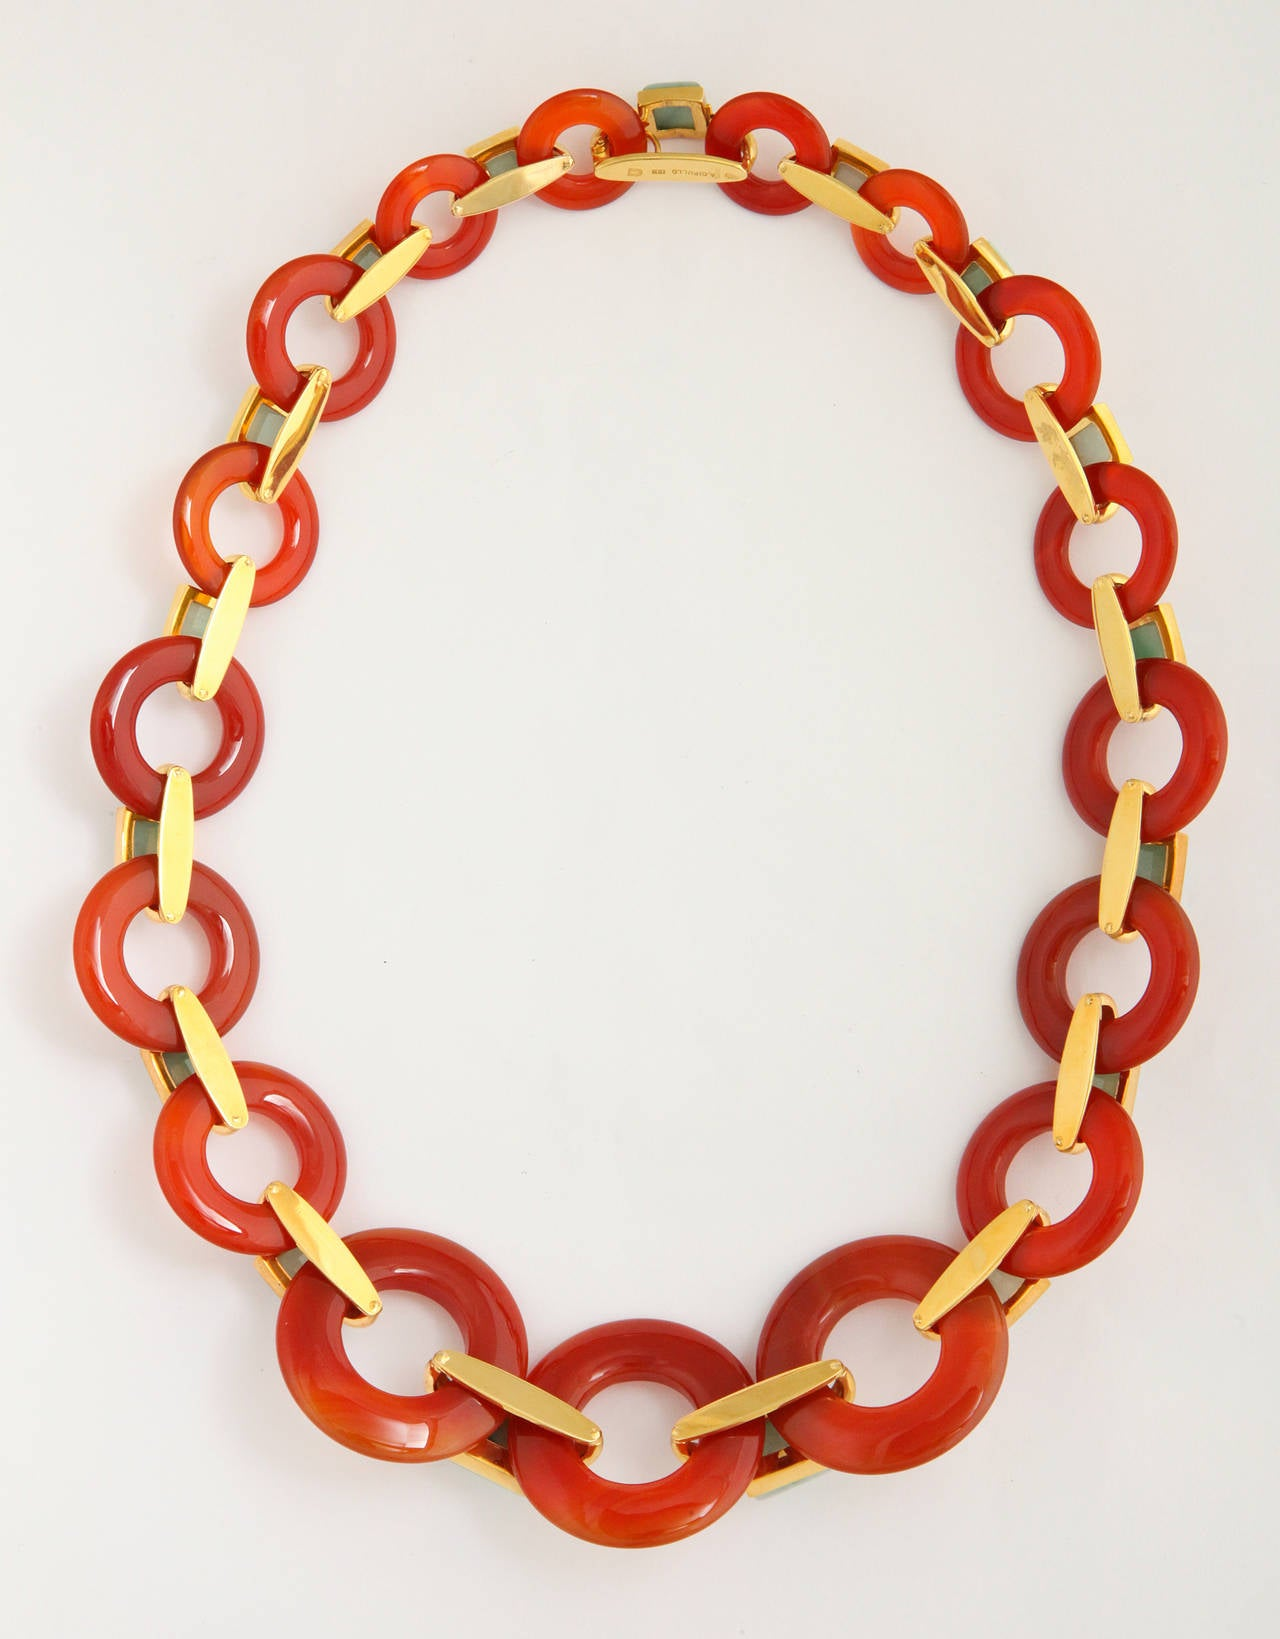 1970s Aldo Cipullo Carved Carnelian Jade Gold Link Necklace 2